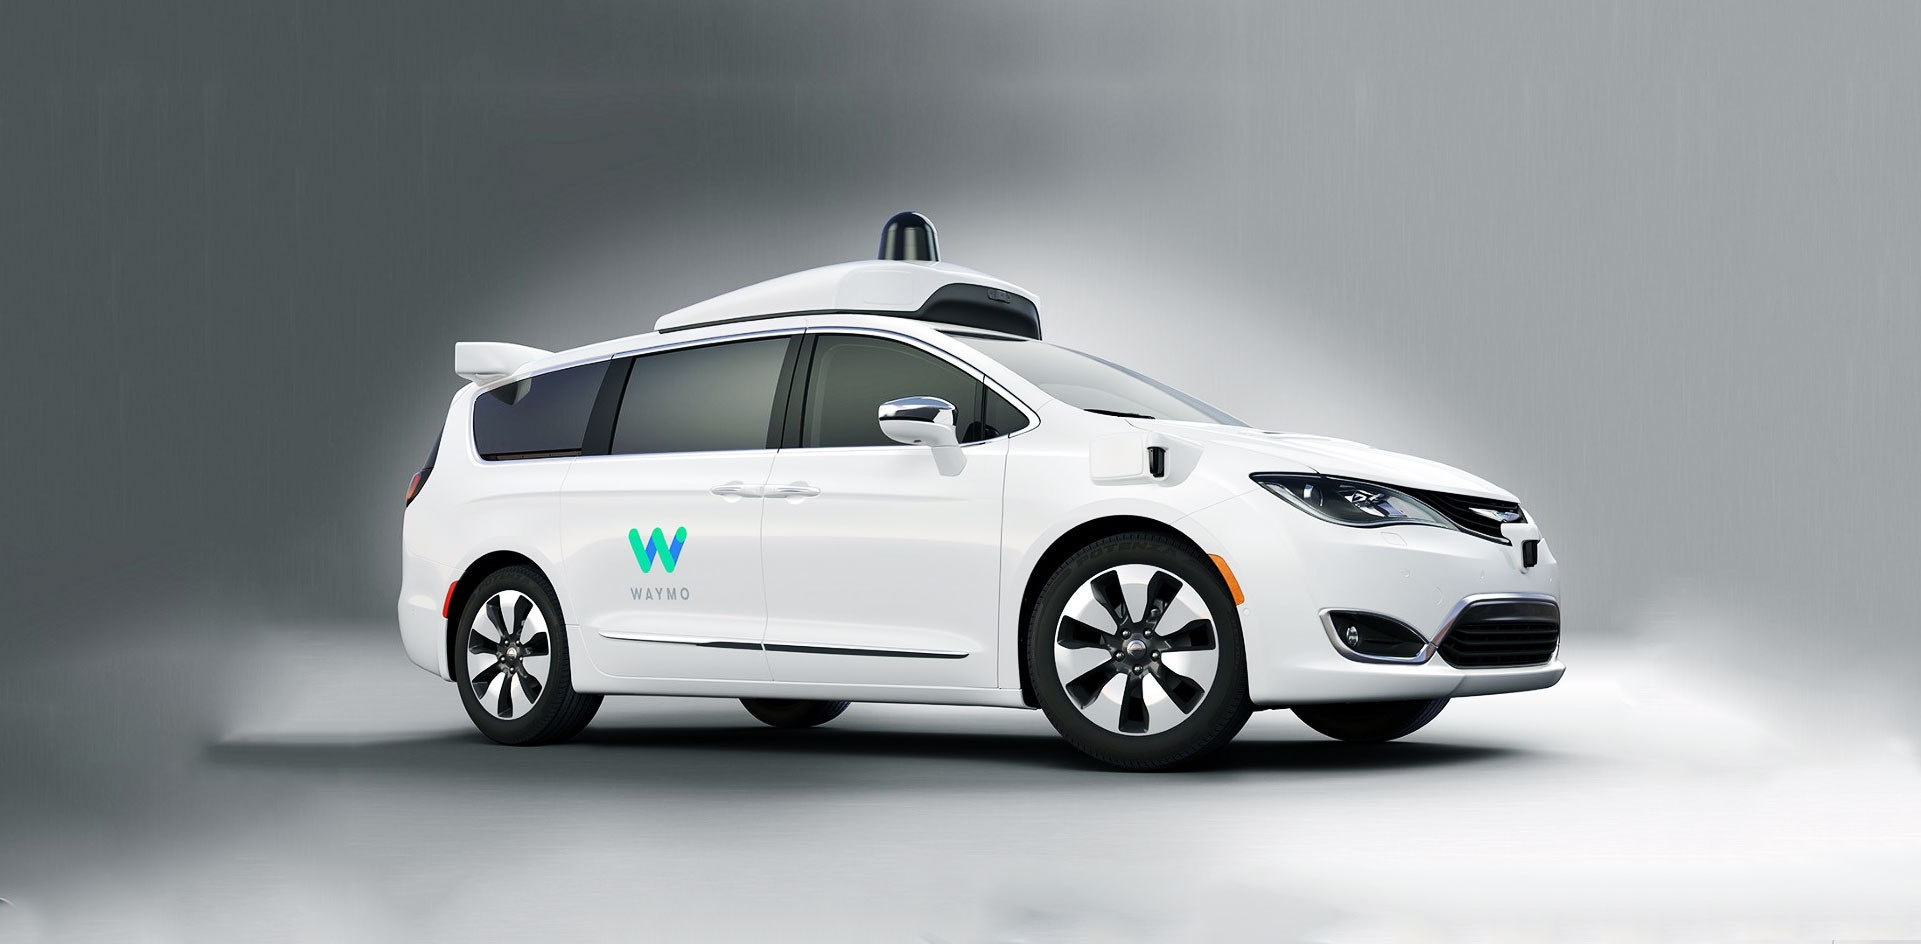 Waymo drops 'self-driving' from its name, opts for 'autonomous driving'  instead – Geospatial World